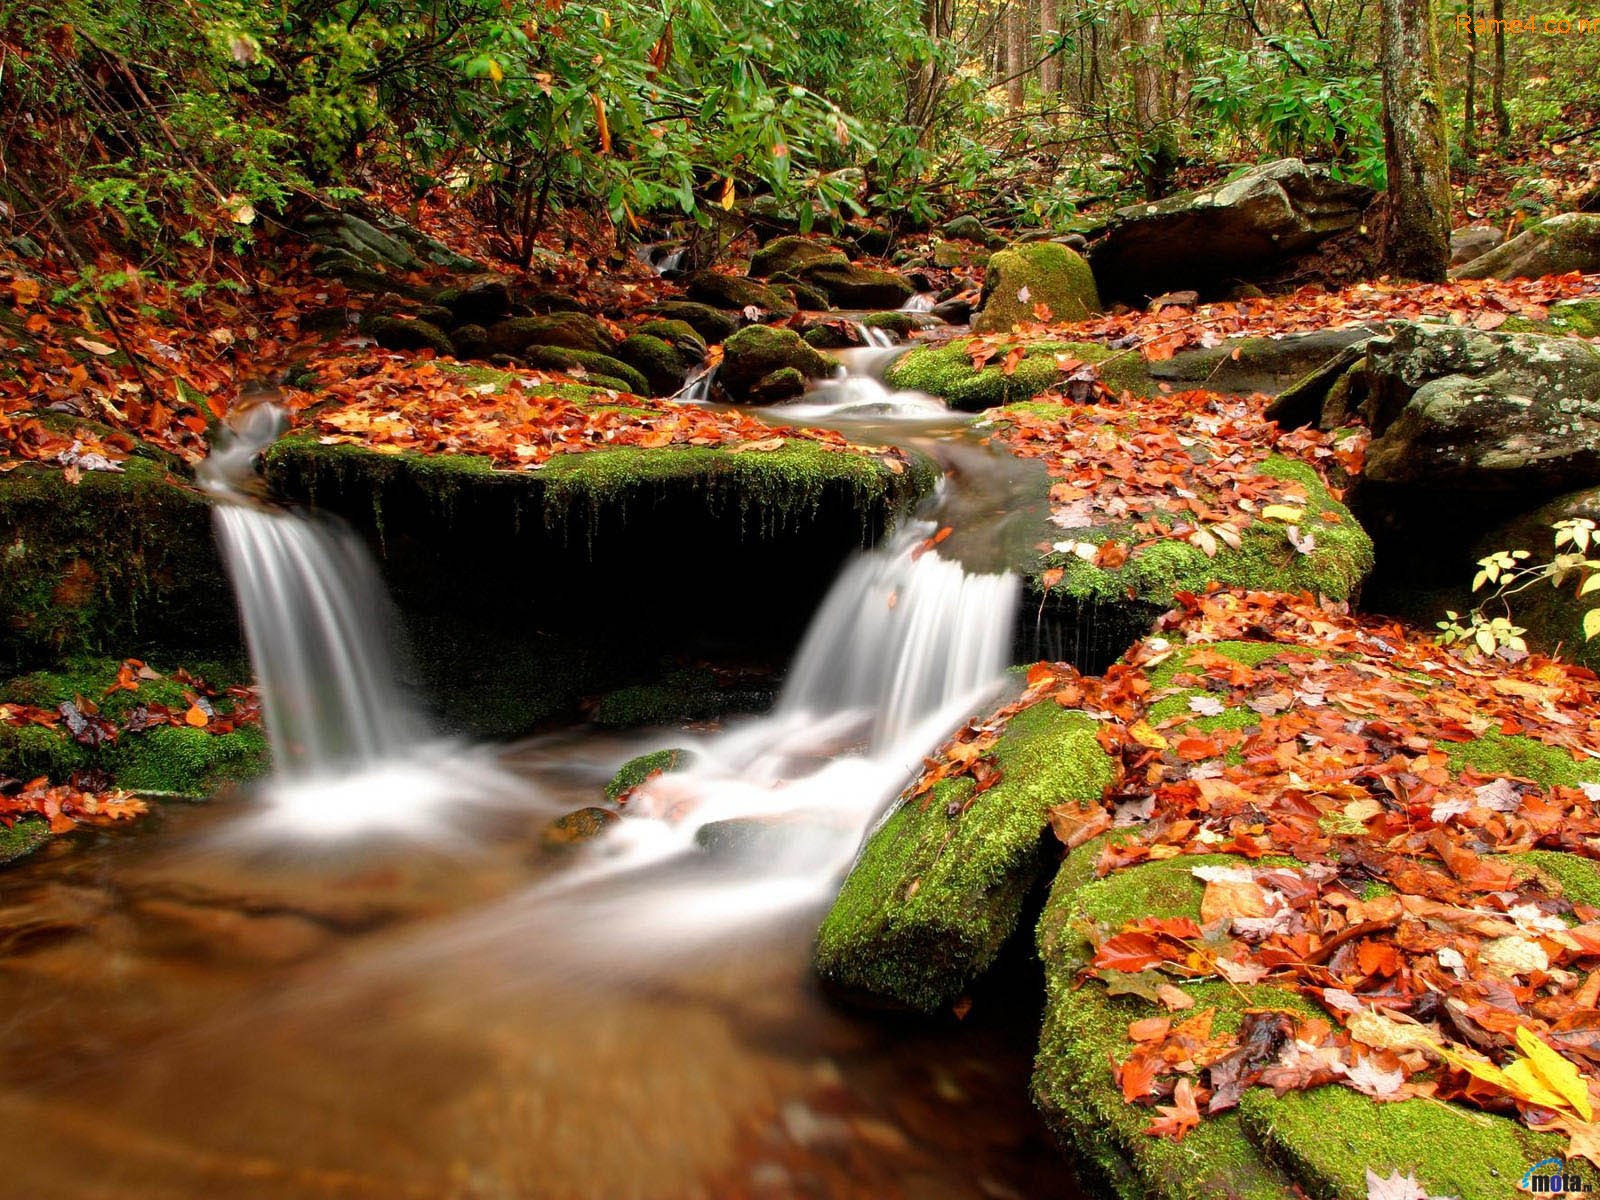 3d Nature wallpapers | New 3d nature wallpapers | Beautiful nature 3d 664